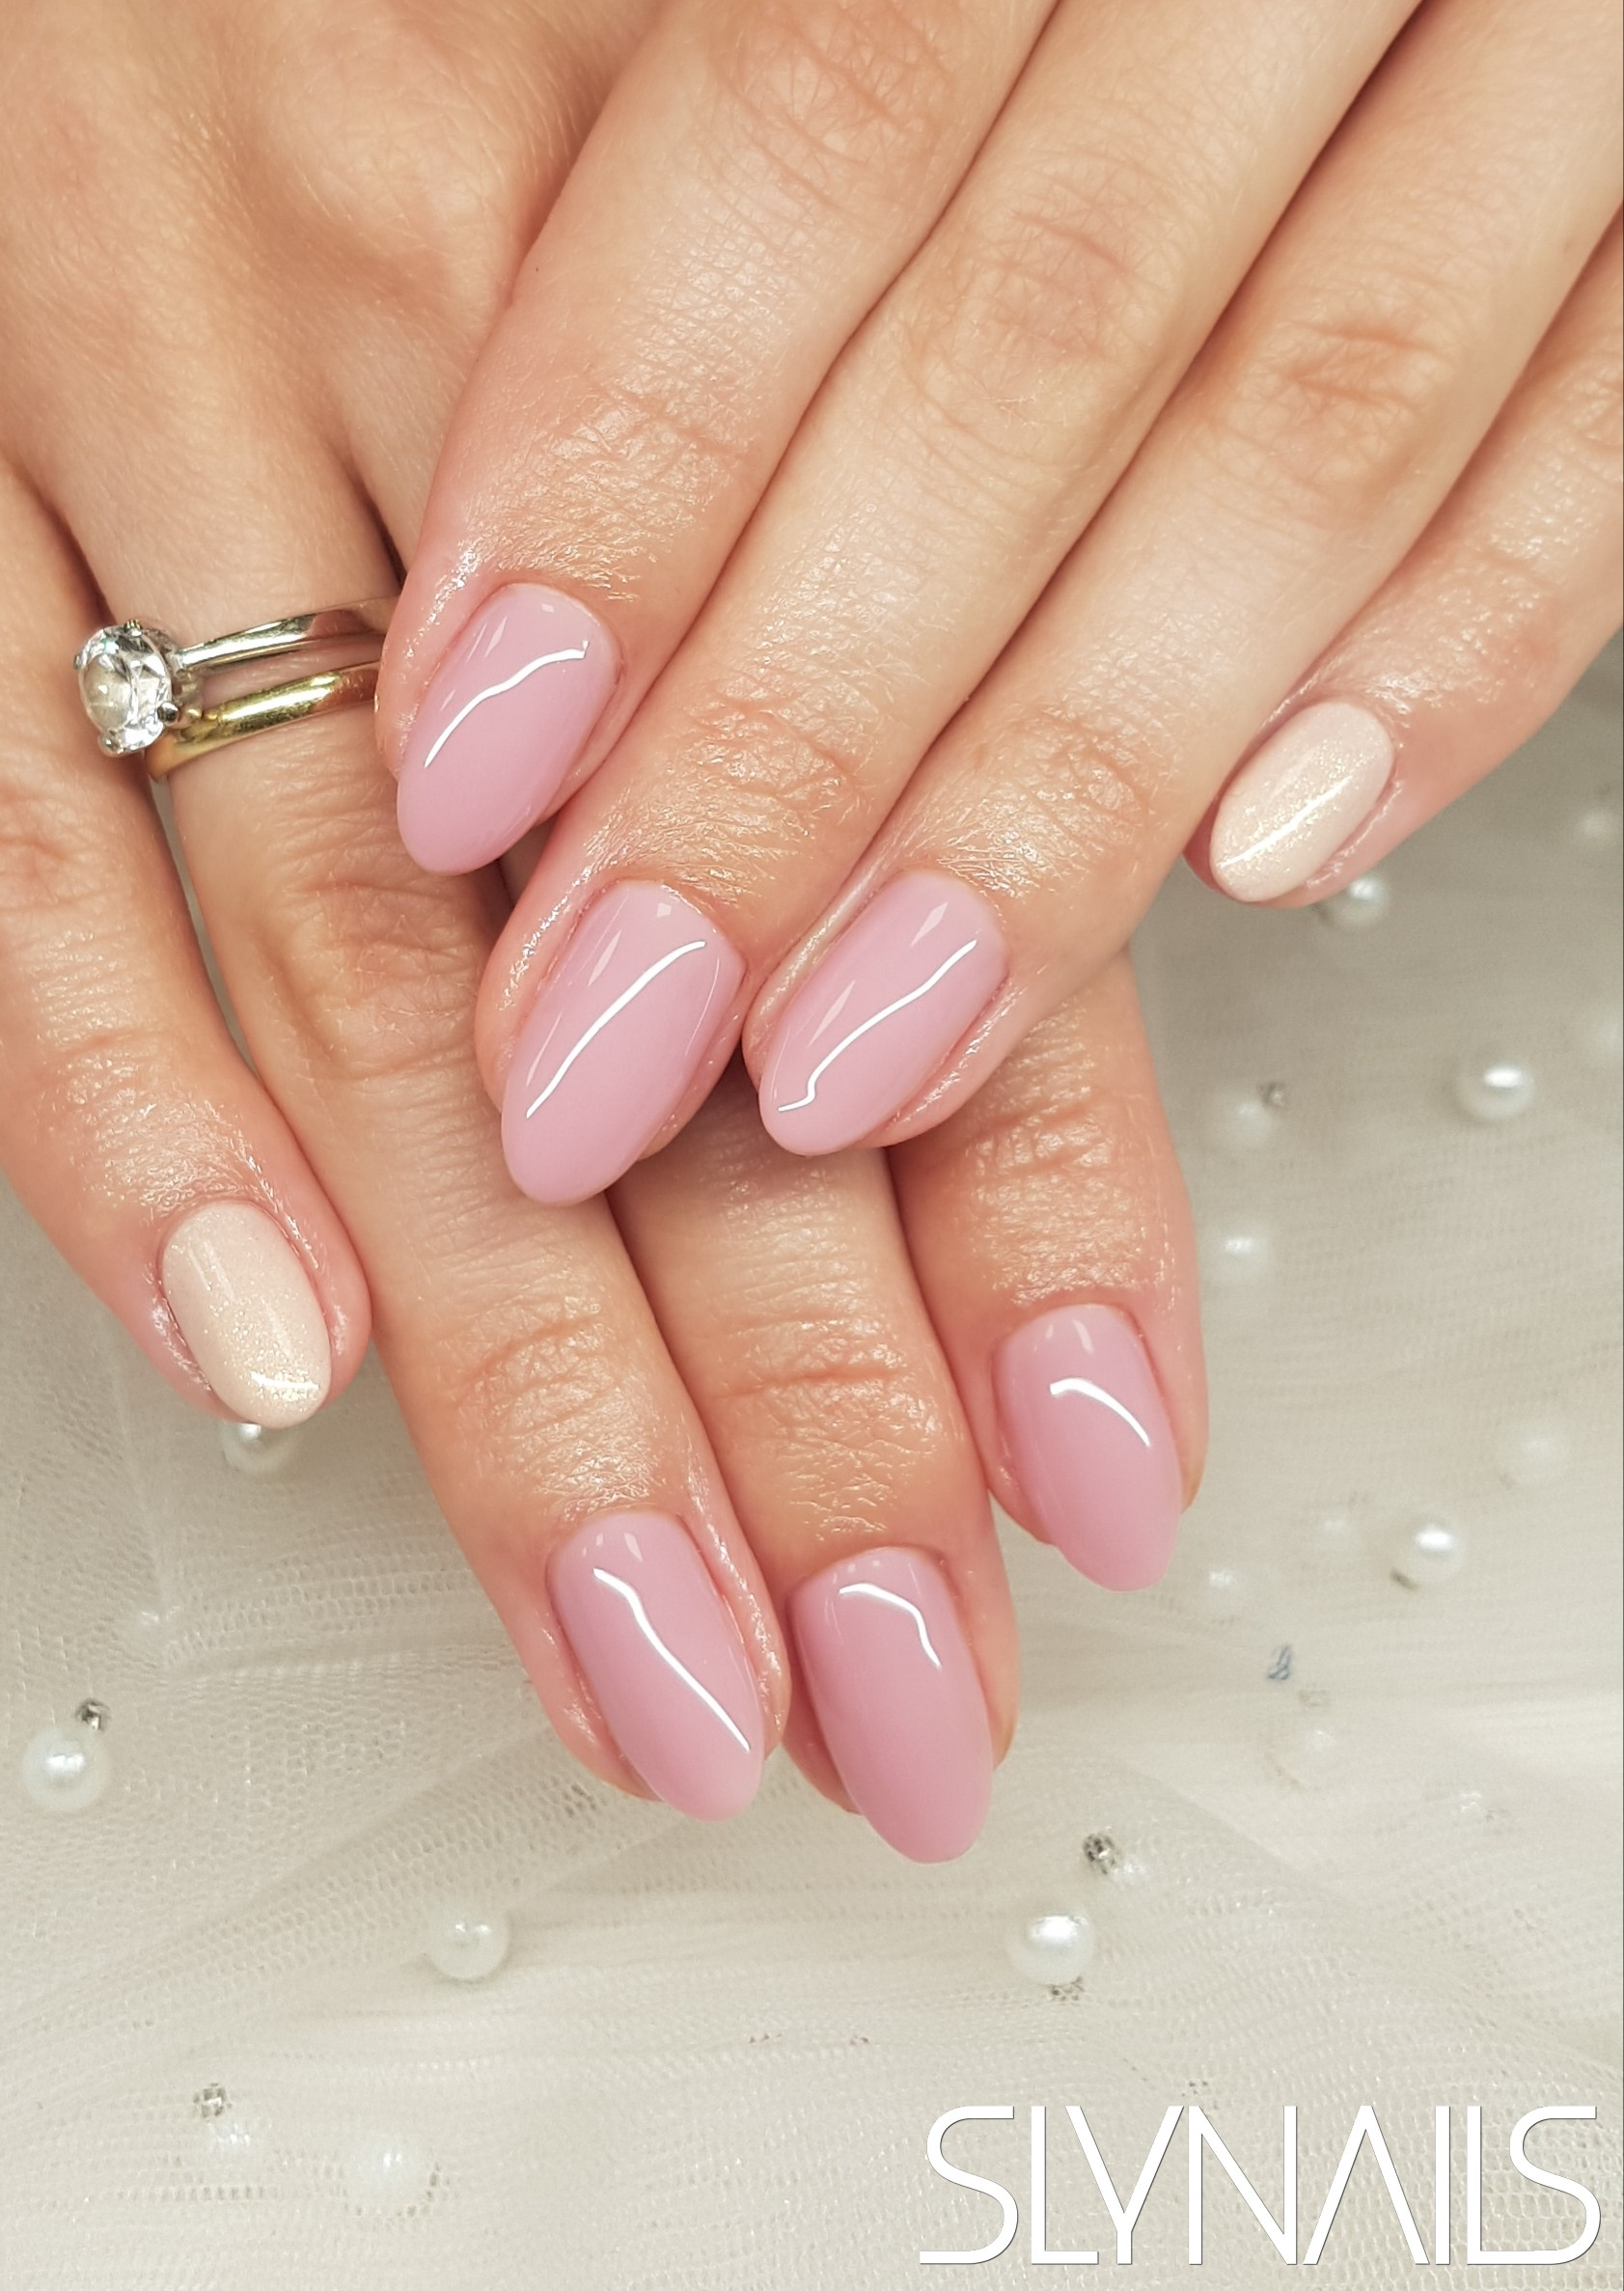 Gel-lac (gel polish), Nude, One color, Almond